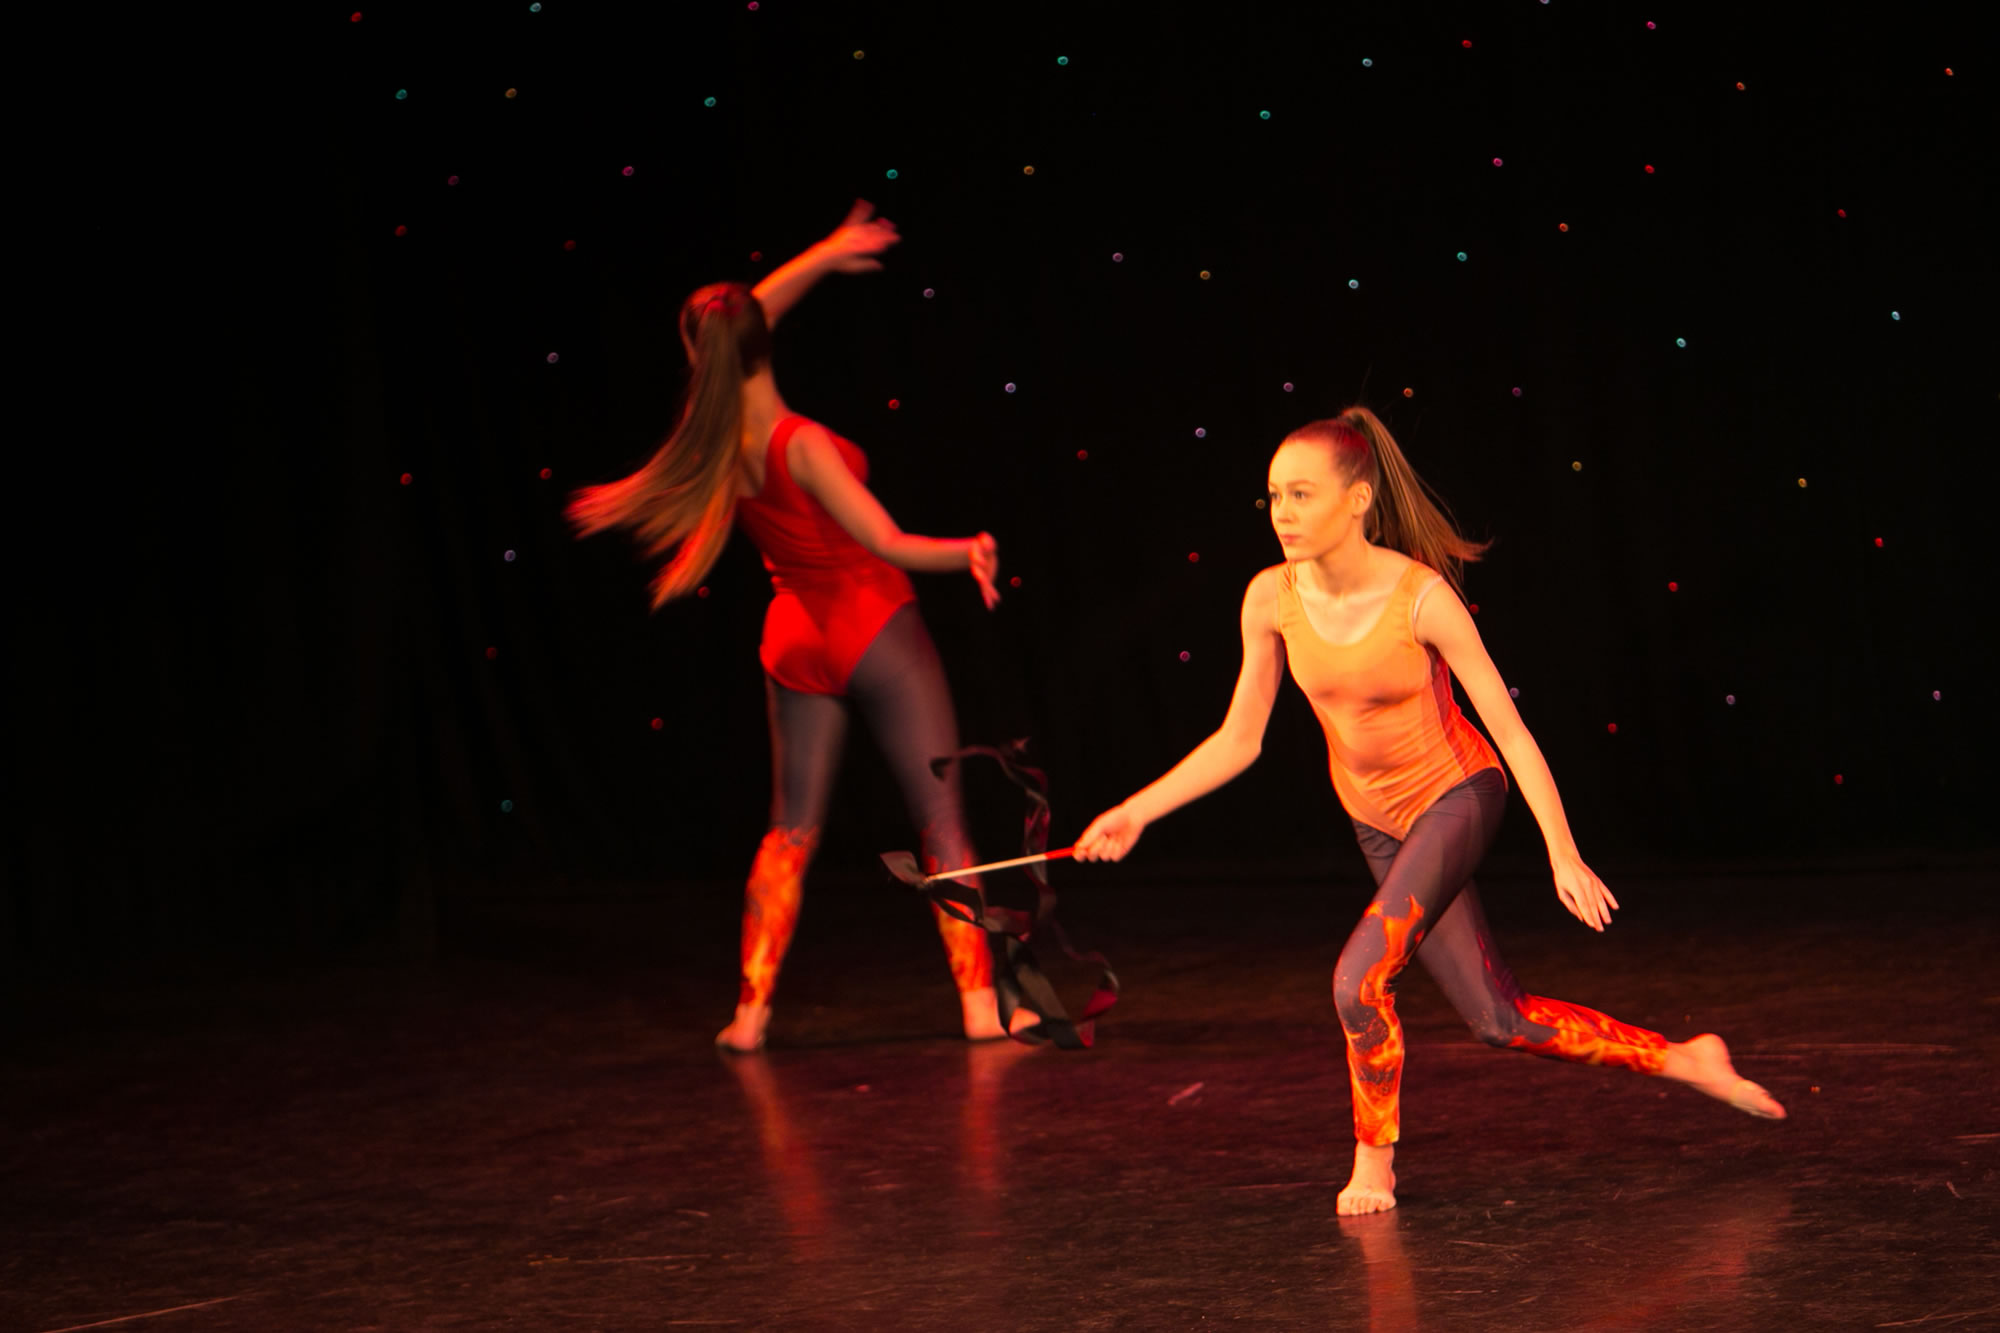 Hitchin_School_of_Dance_Show_2019-SM1_2084.jpg